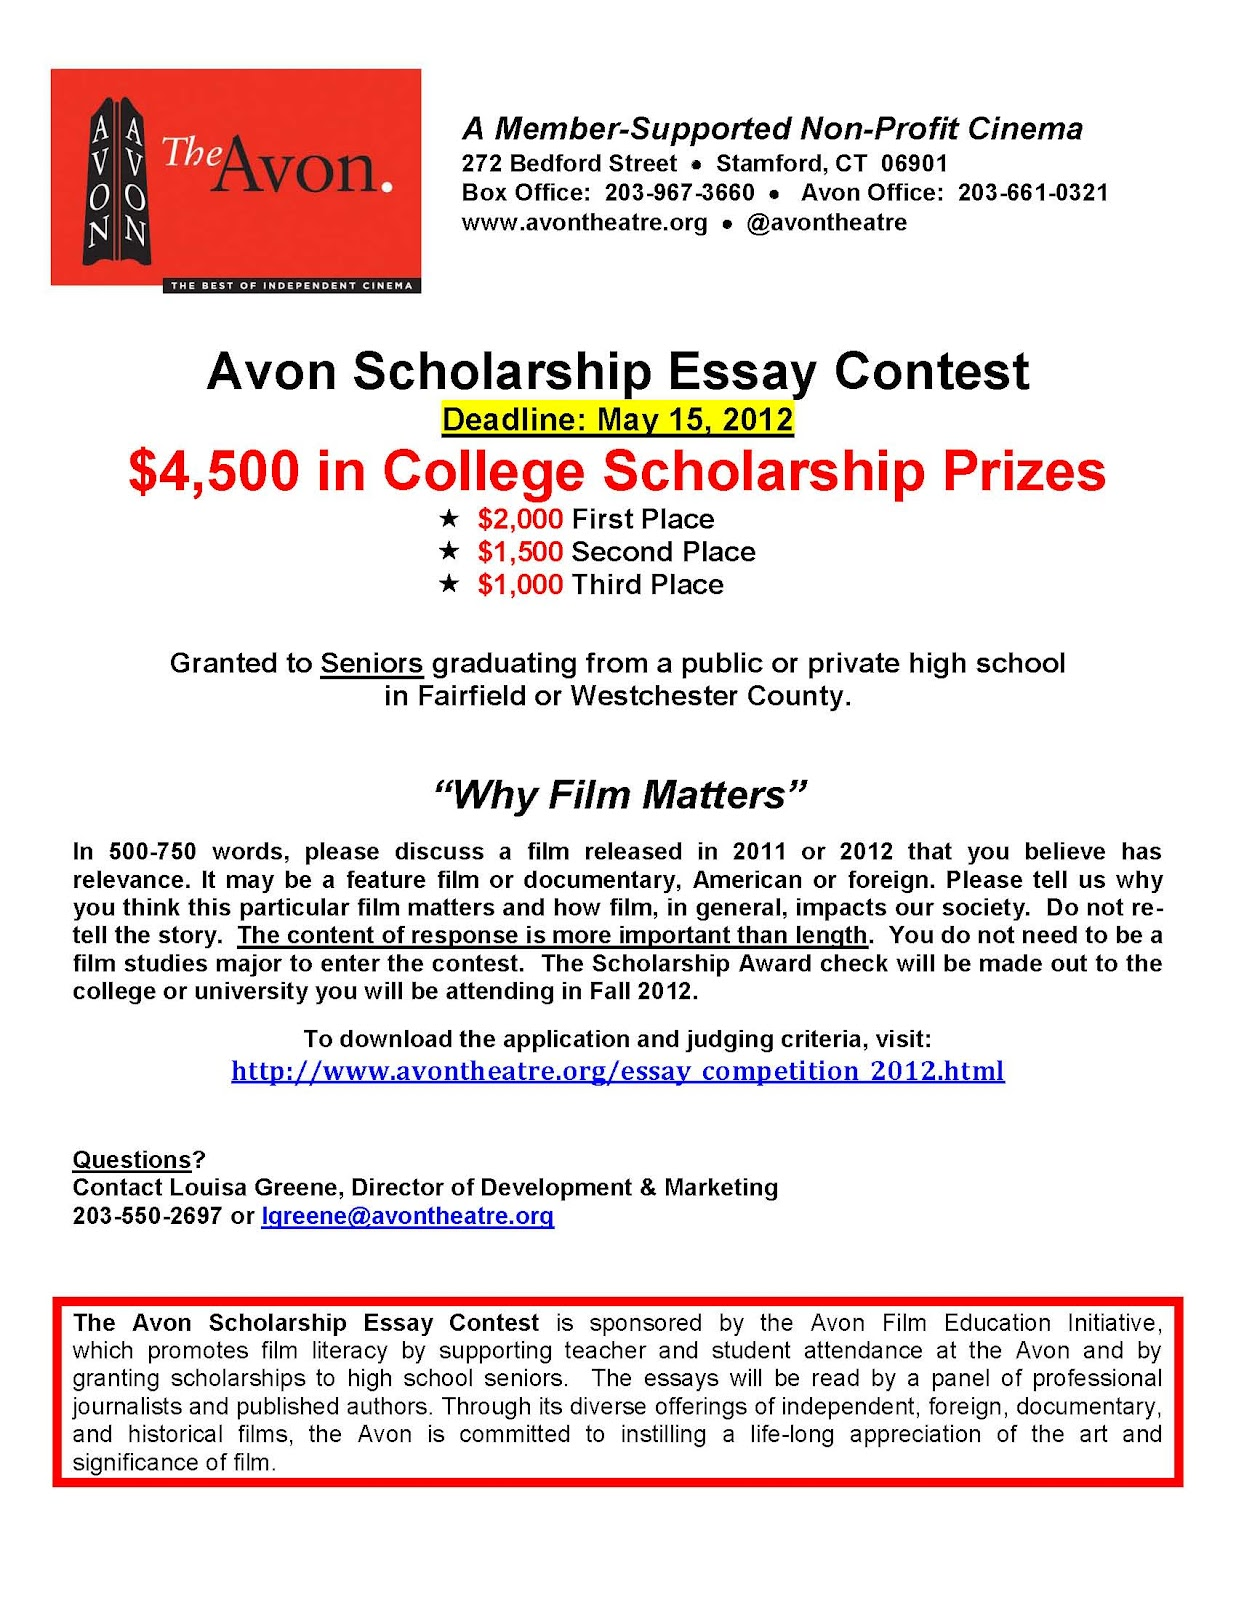 002 No Essay Collegeip Prowler Freeips For High School Seniors Avonscholarshipessaycontest2012 In Texas California Class Of Short Example Wondrous Scholarship Scholarships 2019 Full